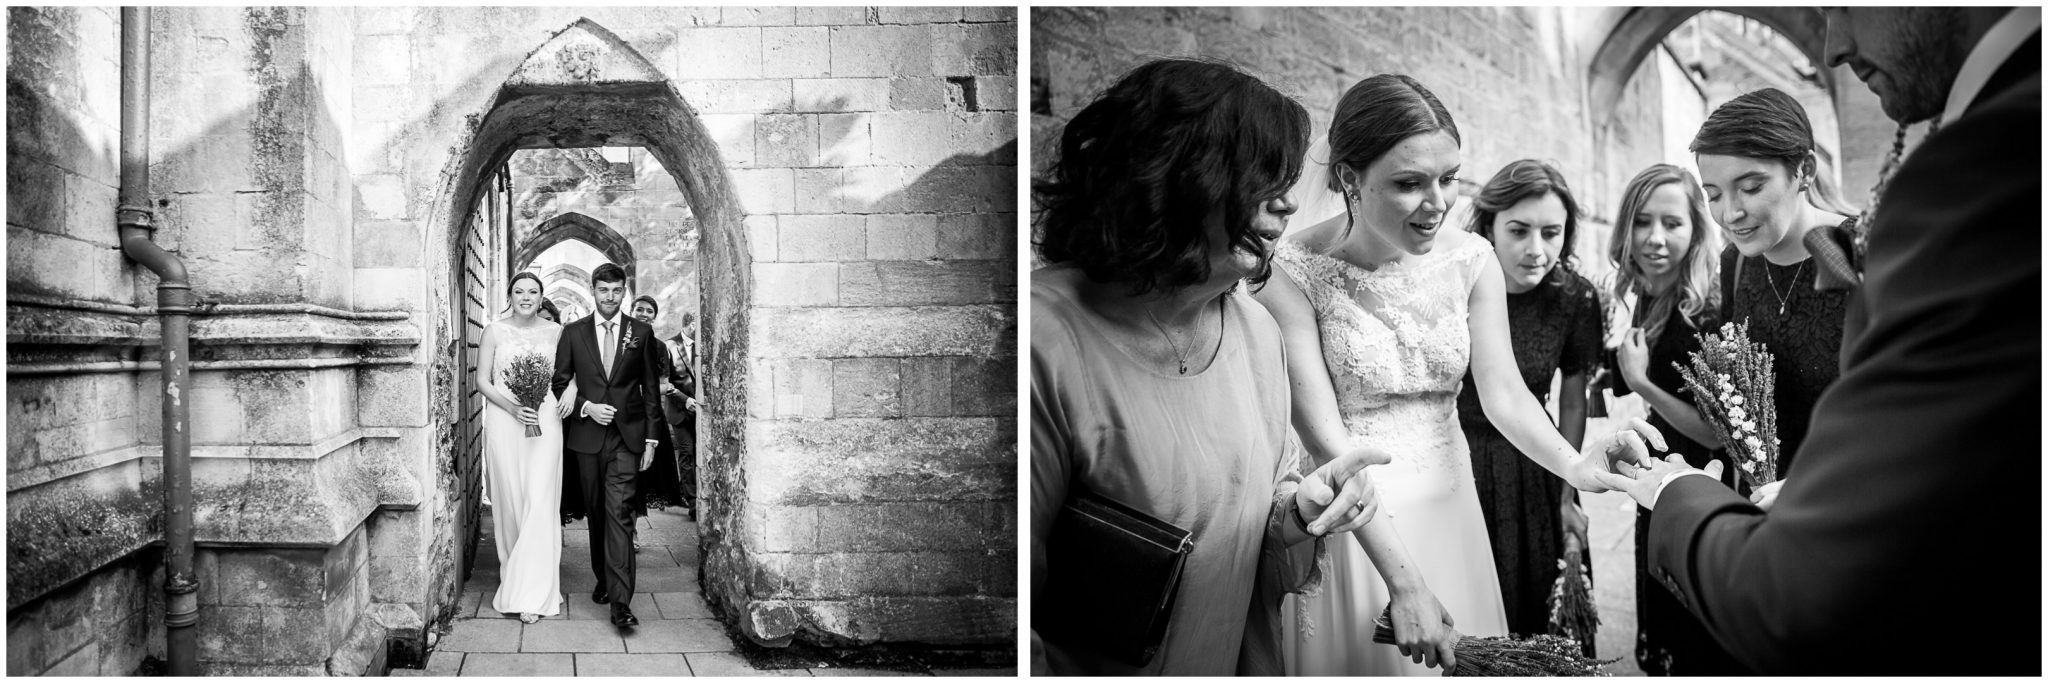 winchester cathedral wedding photography black and white photos in the cloisters